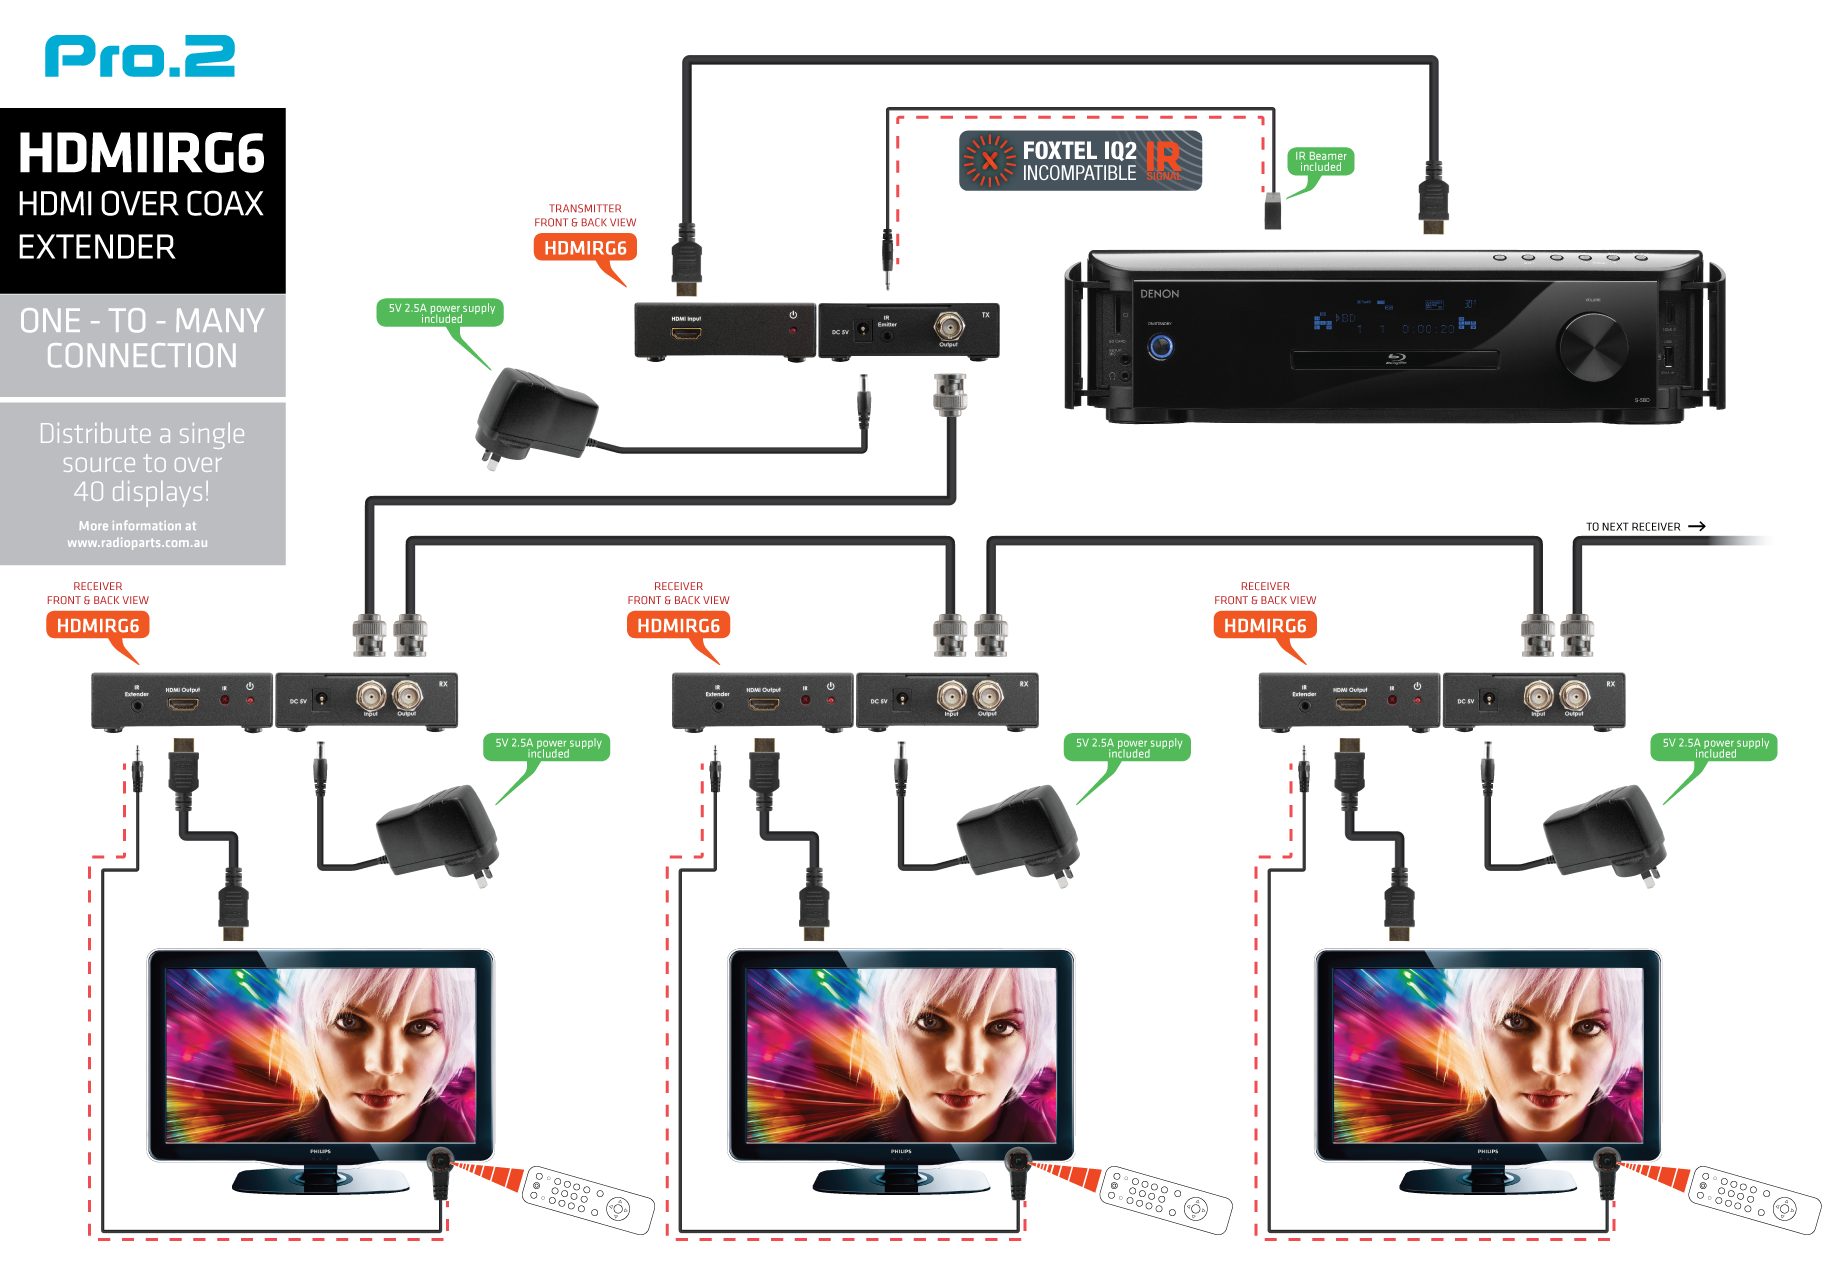 cat 6 patch cable wiring diagram cat6 ether displayport cable wiring diagram hdmirg6 hdmi over single coaxial with ir pro2